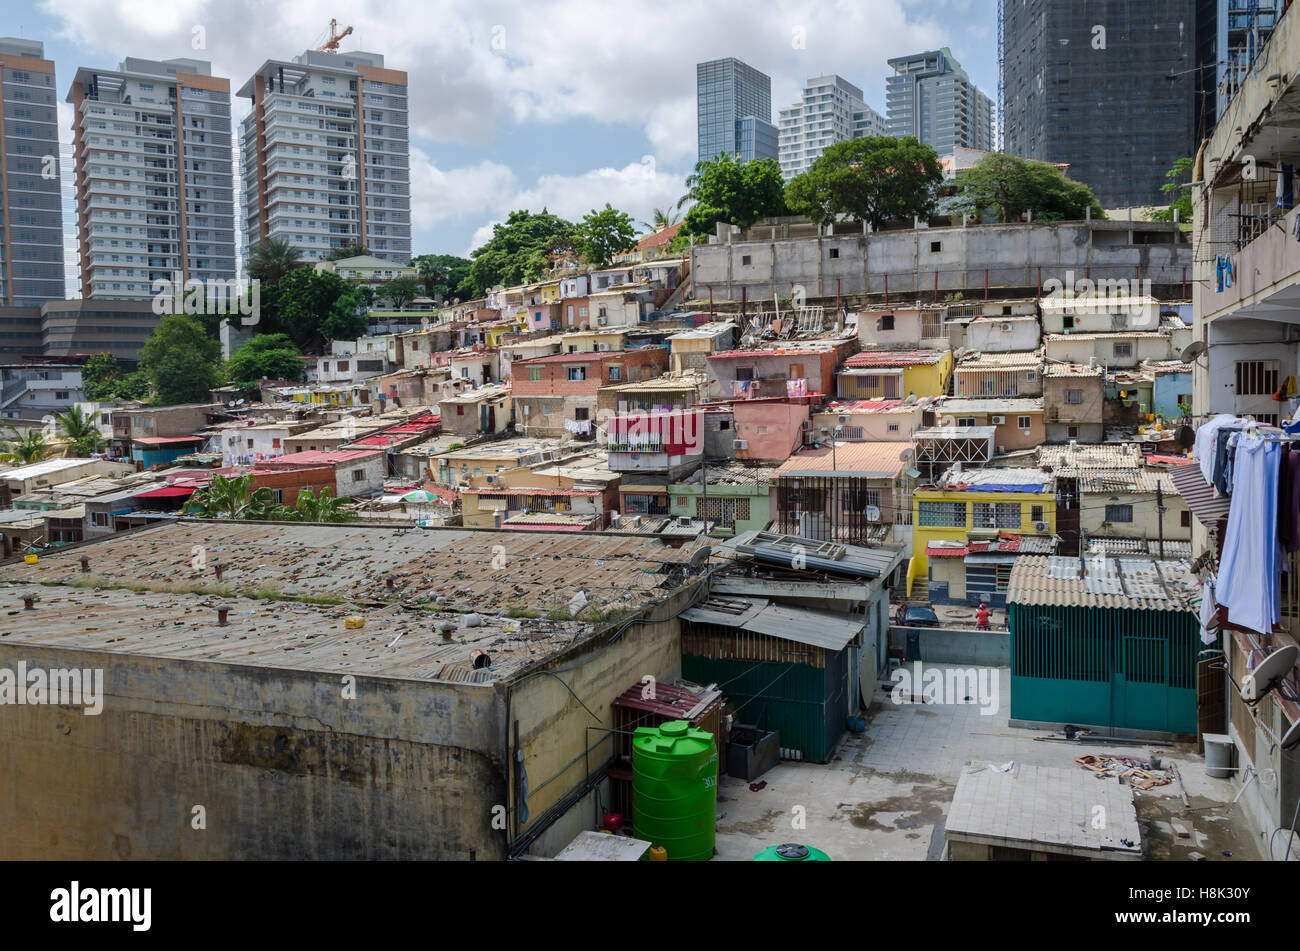 Colorful houses of the poor inhabitants of Luanda, Angola. These ghettos stand in stark contrast to the modern rich - Stock Image